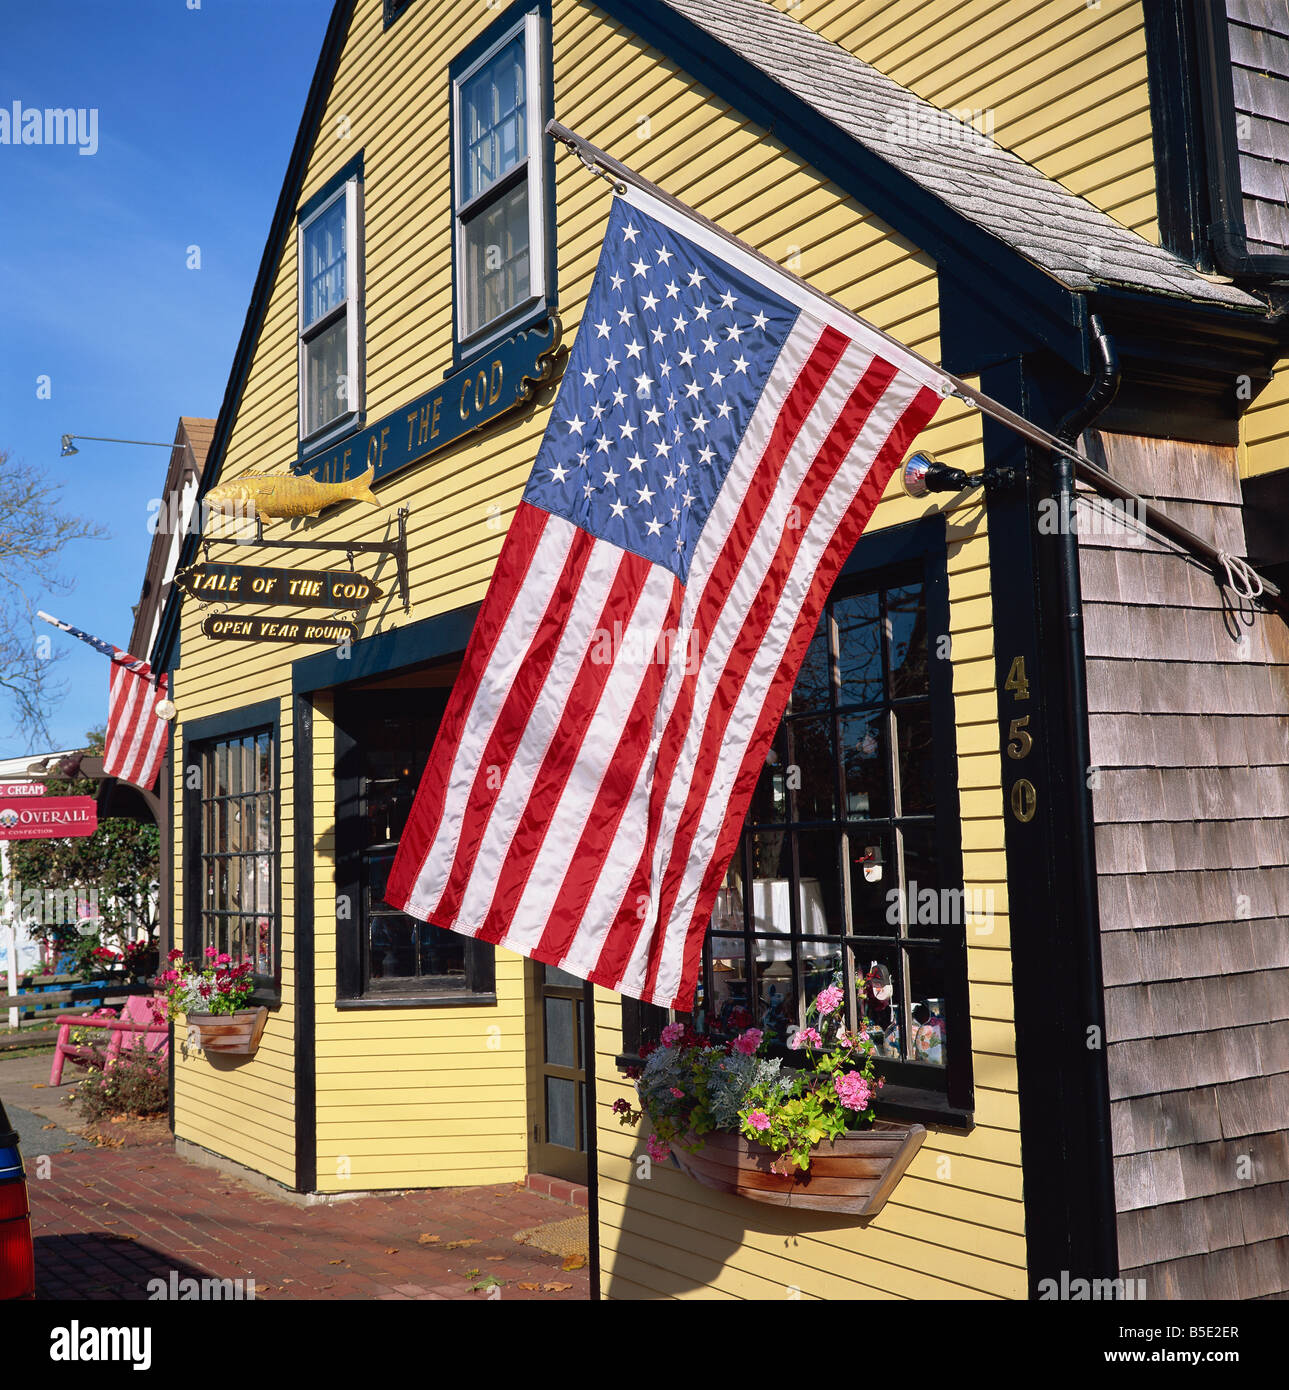 The American flag the stars and stripes flies outside the Tale of the Cod shop in Cape Cod Massachusetts New England - Stock Image